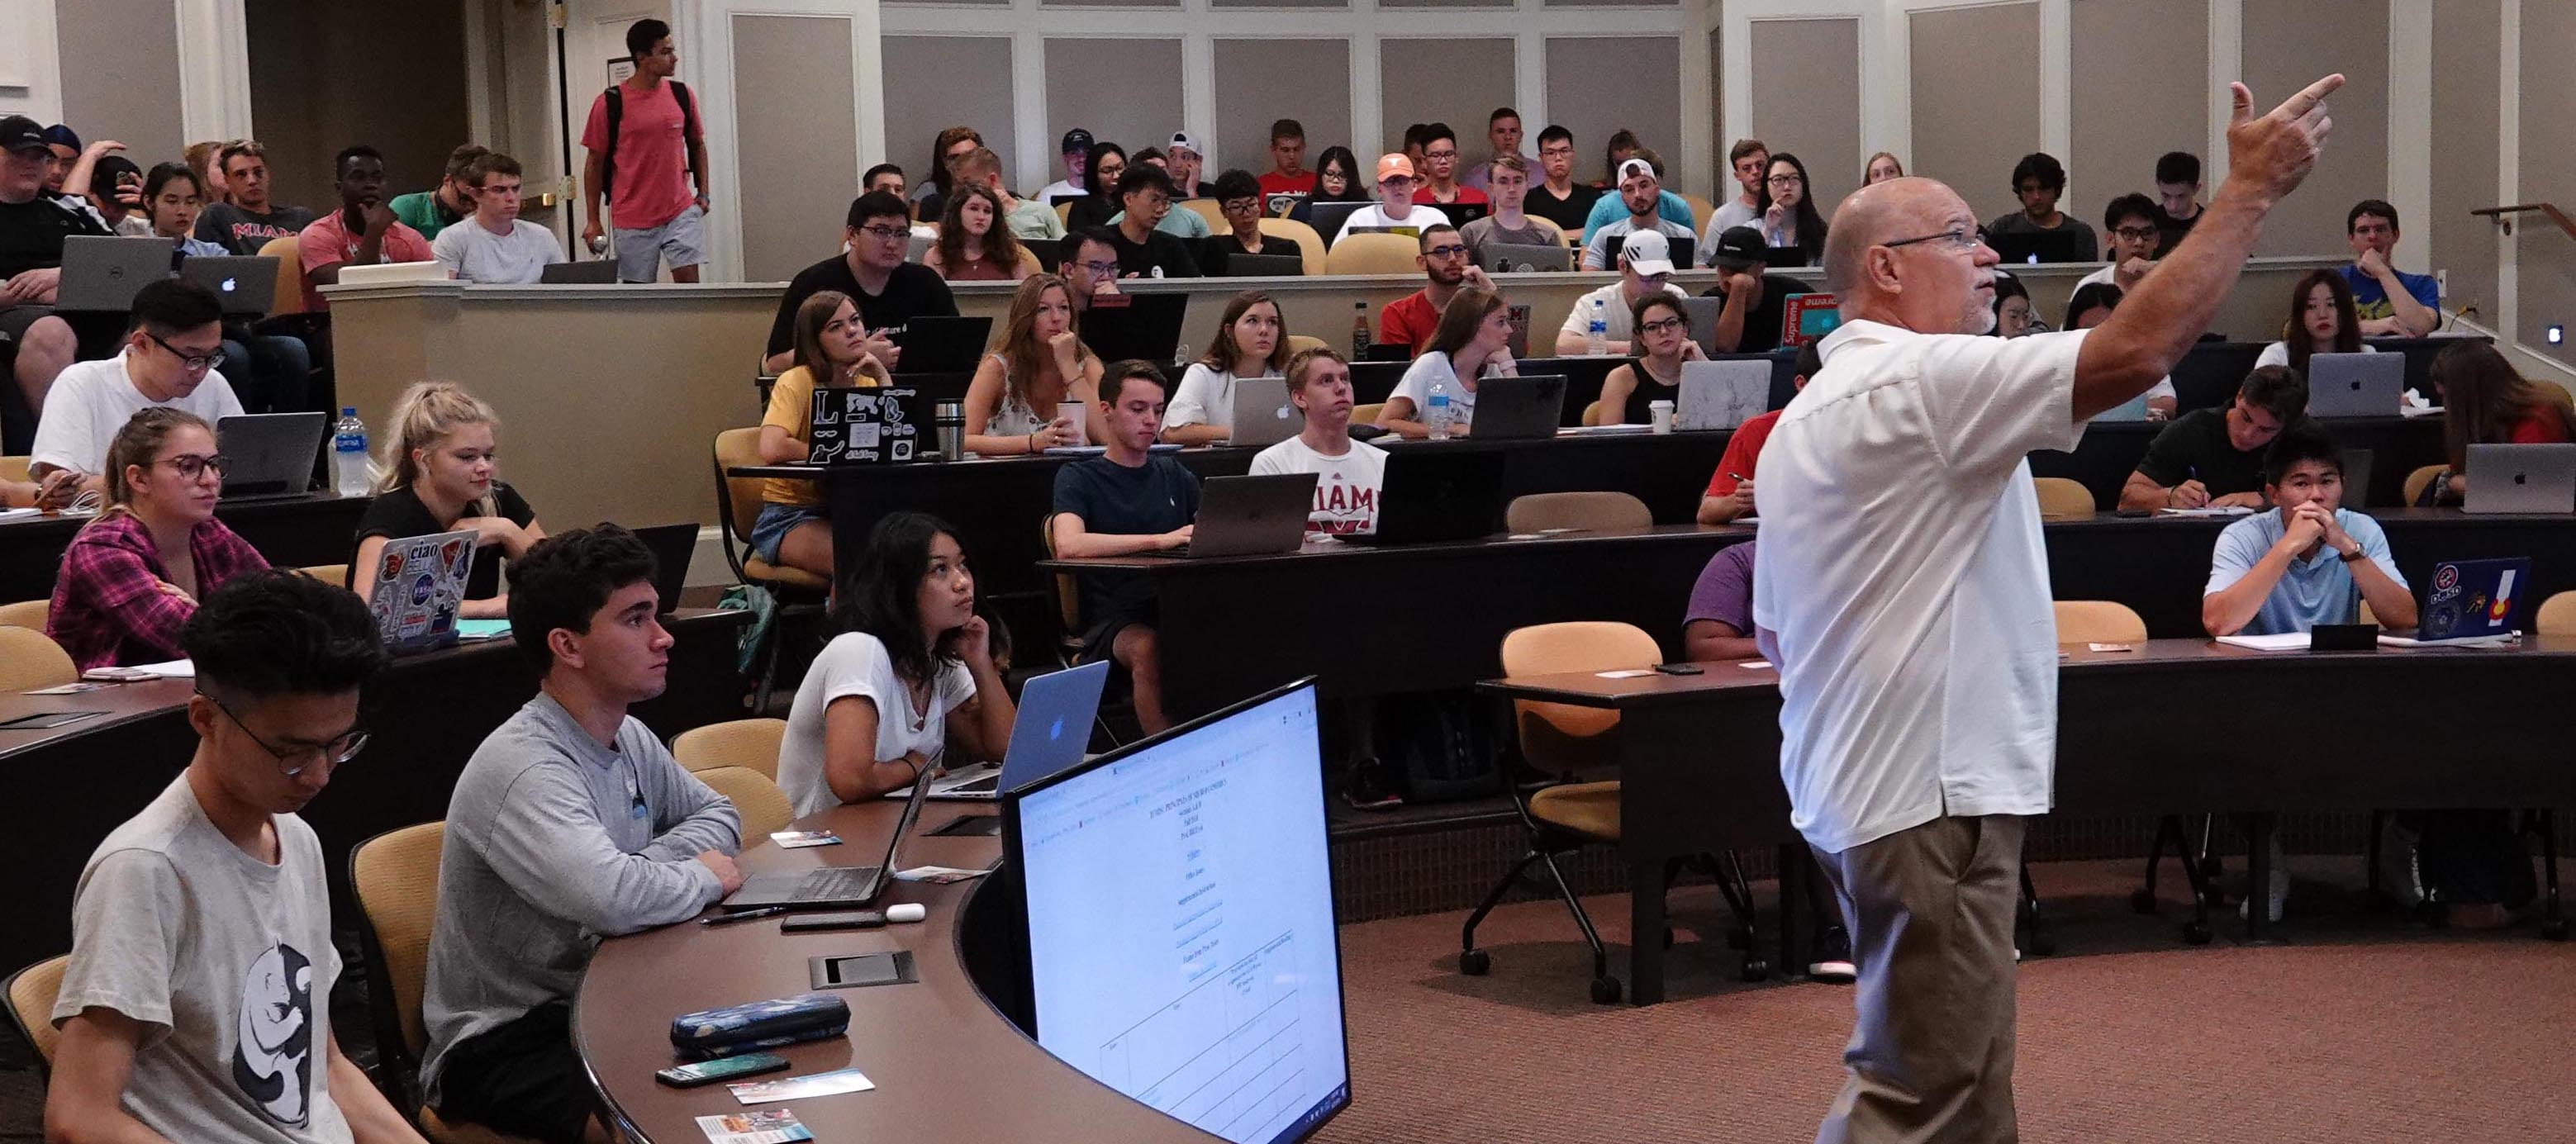 Instructor gestures toward the screen during the first day of classes